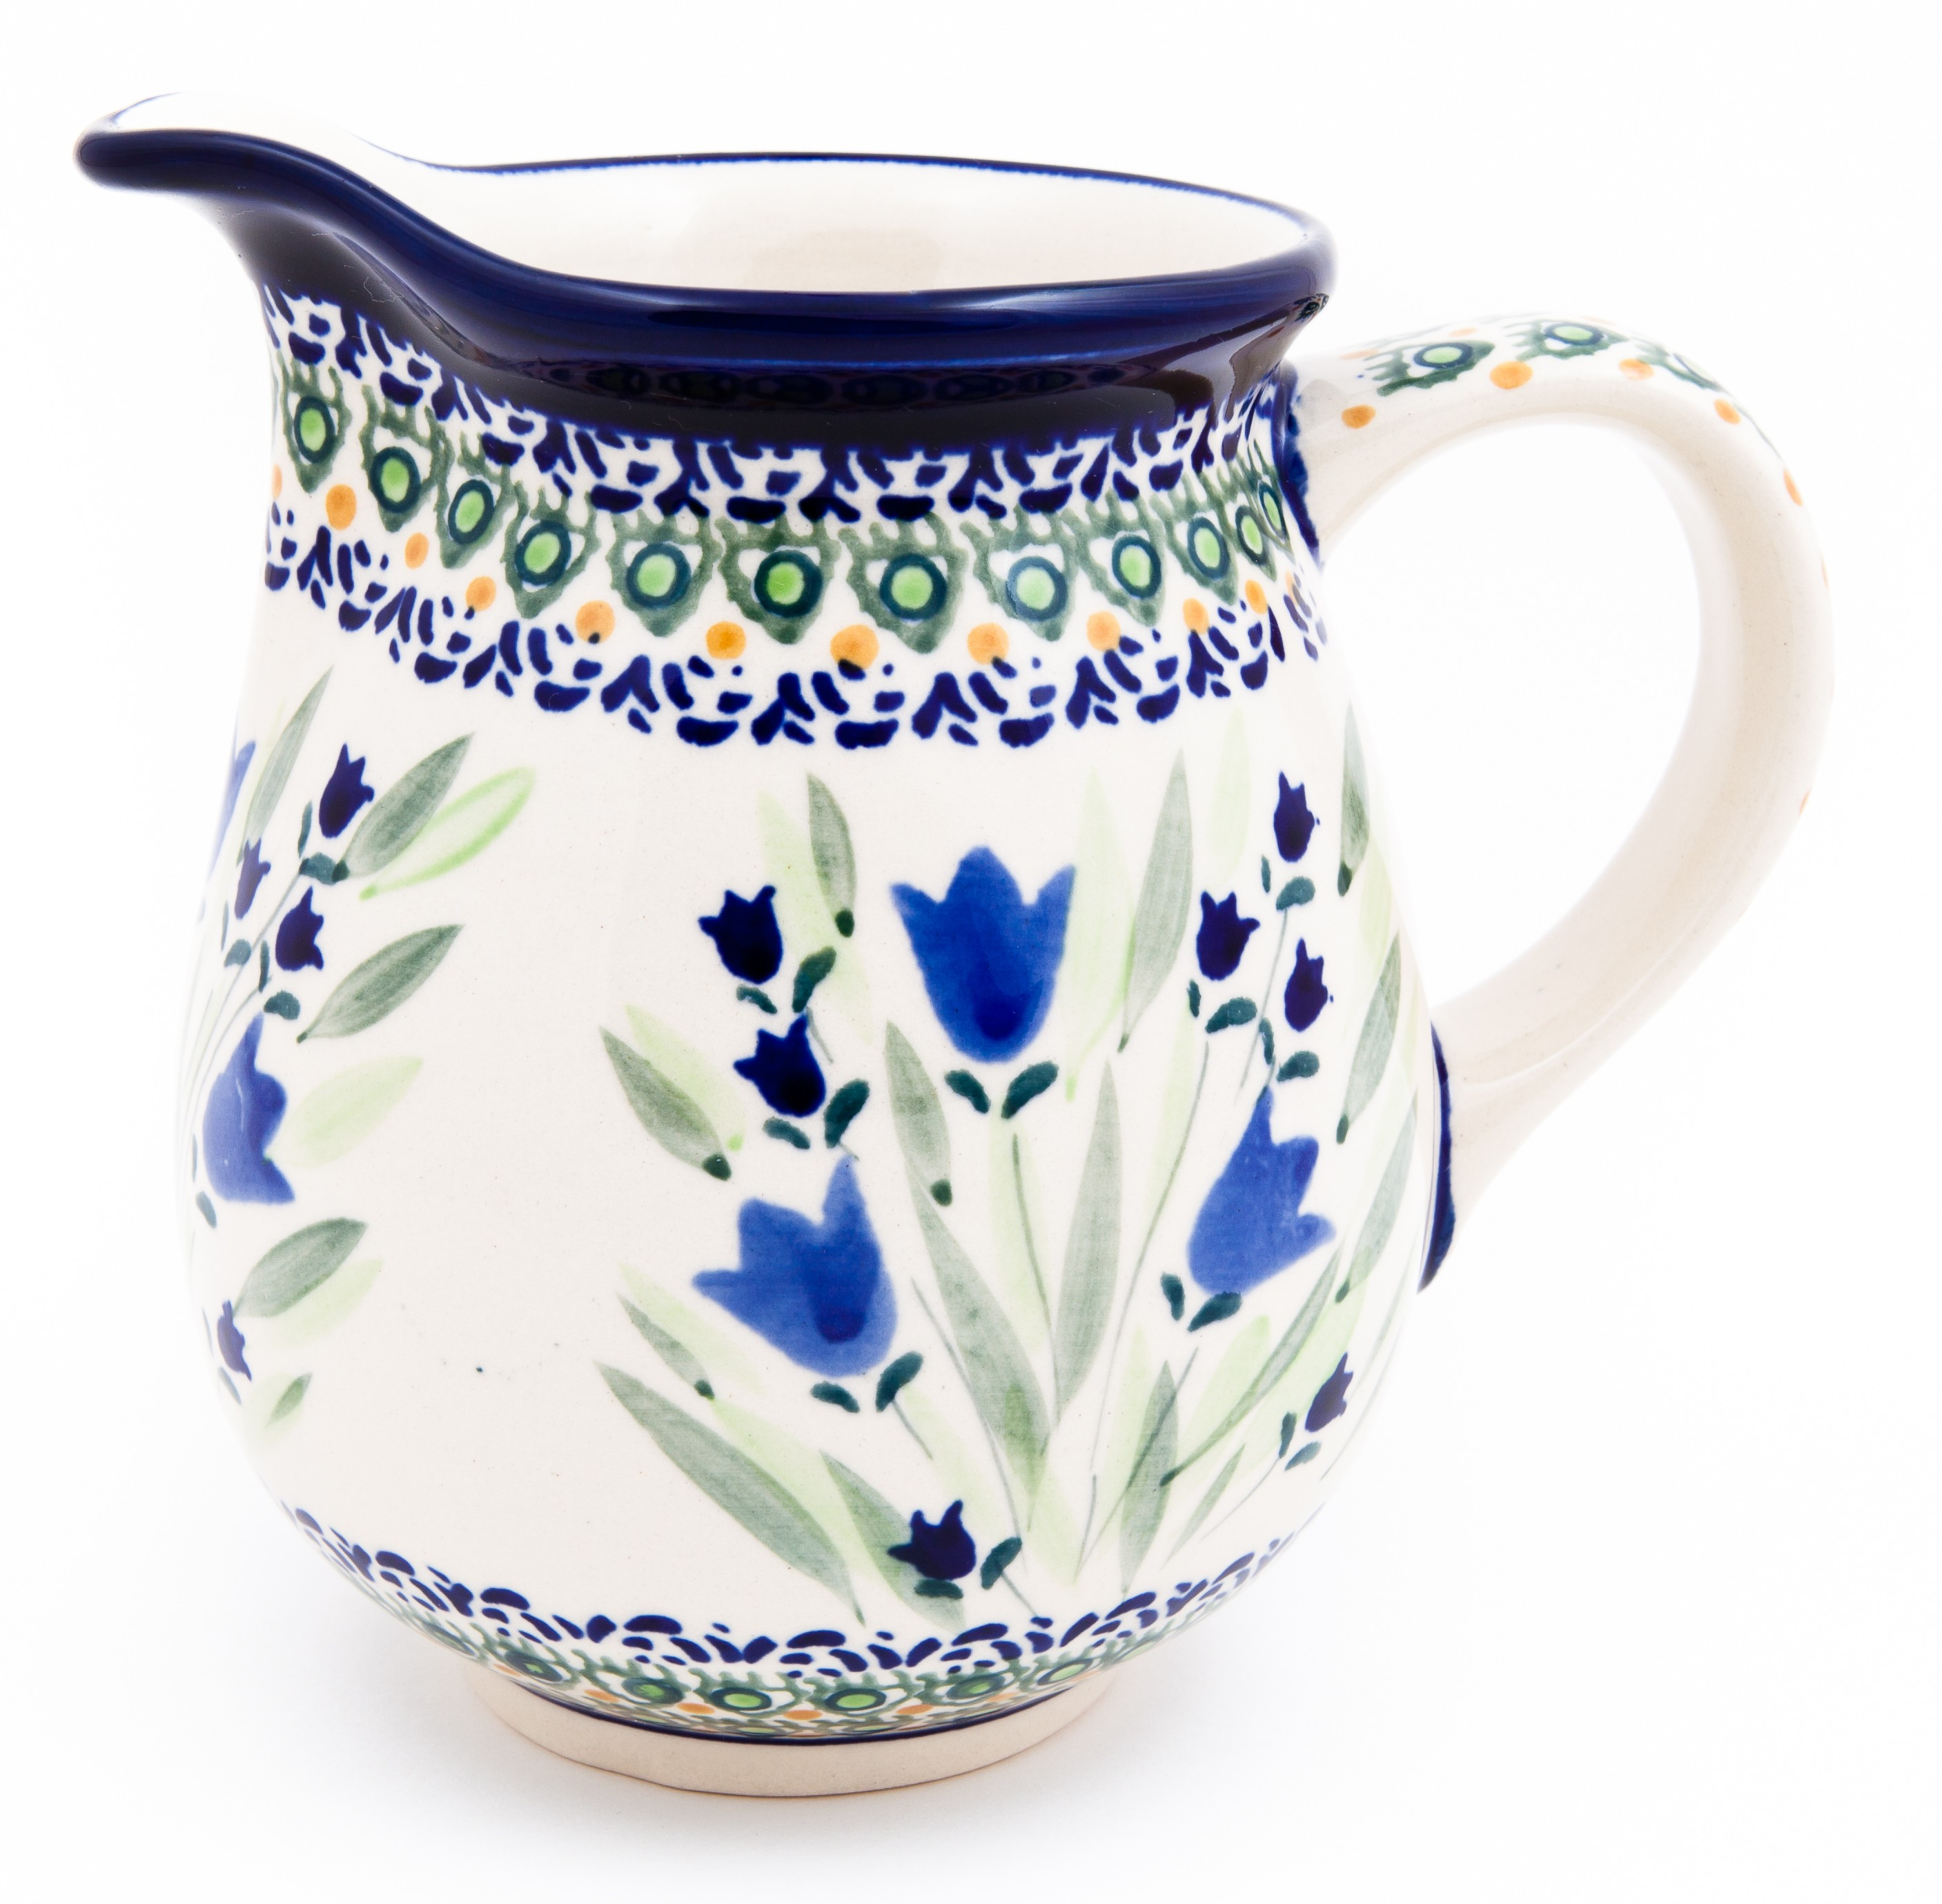 "Pottery Avenue Blue Tulip 3.6 Cp Stoneware Pitcher - 5.66"" Tall"